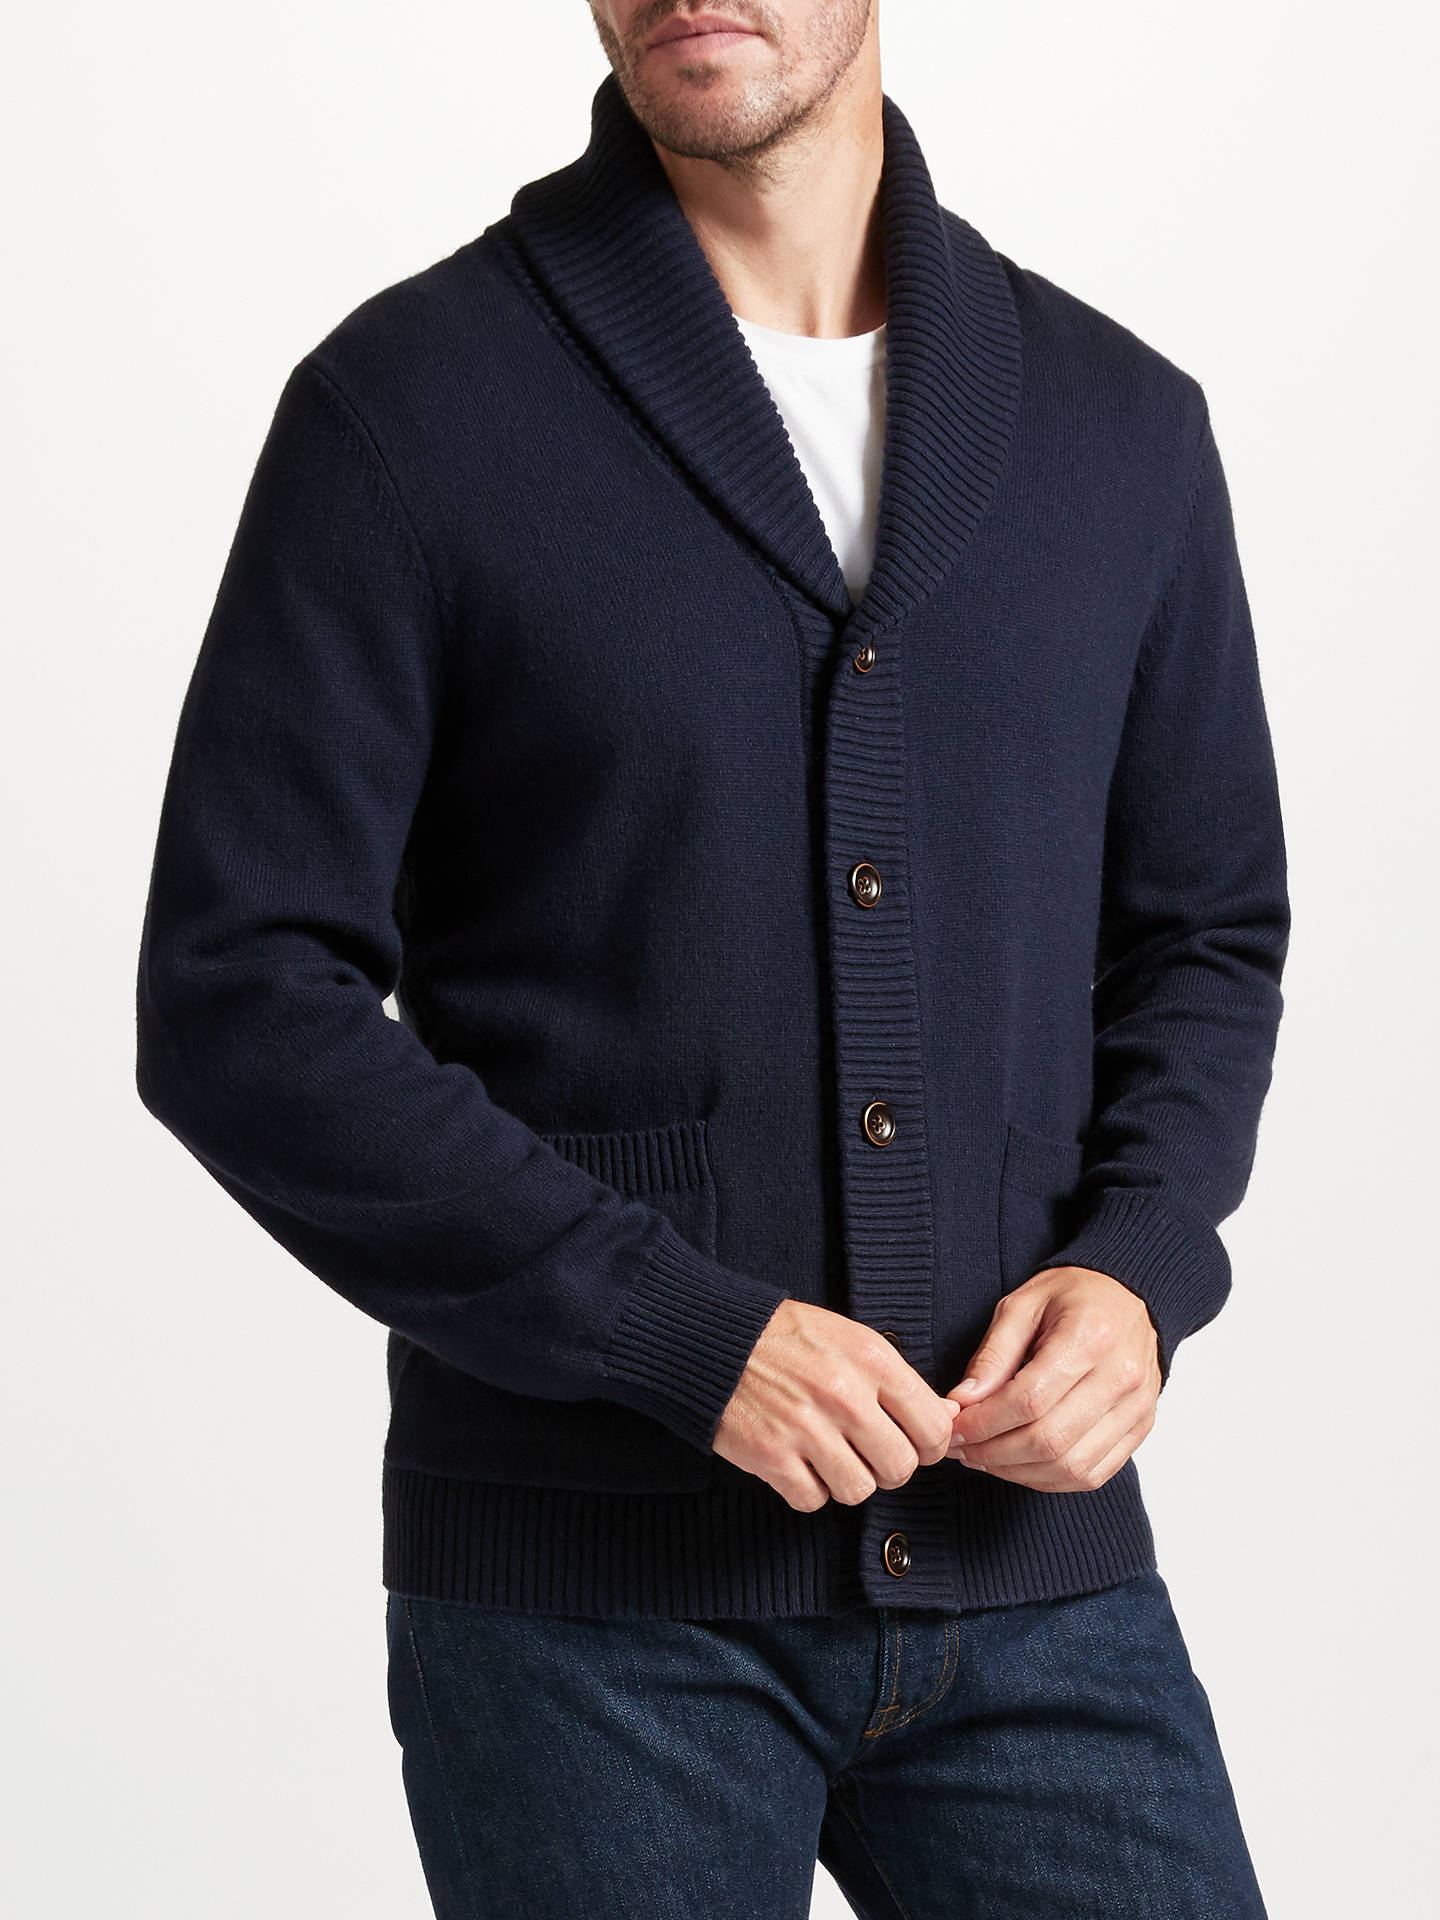 BuyJohn Lewis Shawl Neck Cardigan, Navy, S Online at johnlewis.com ...